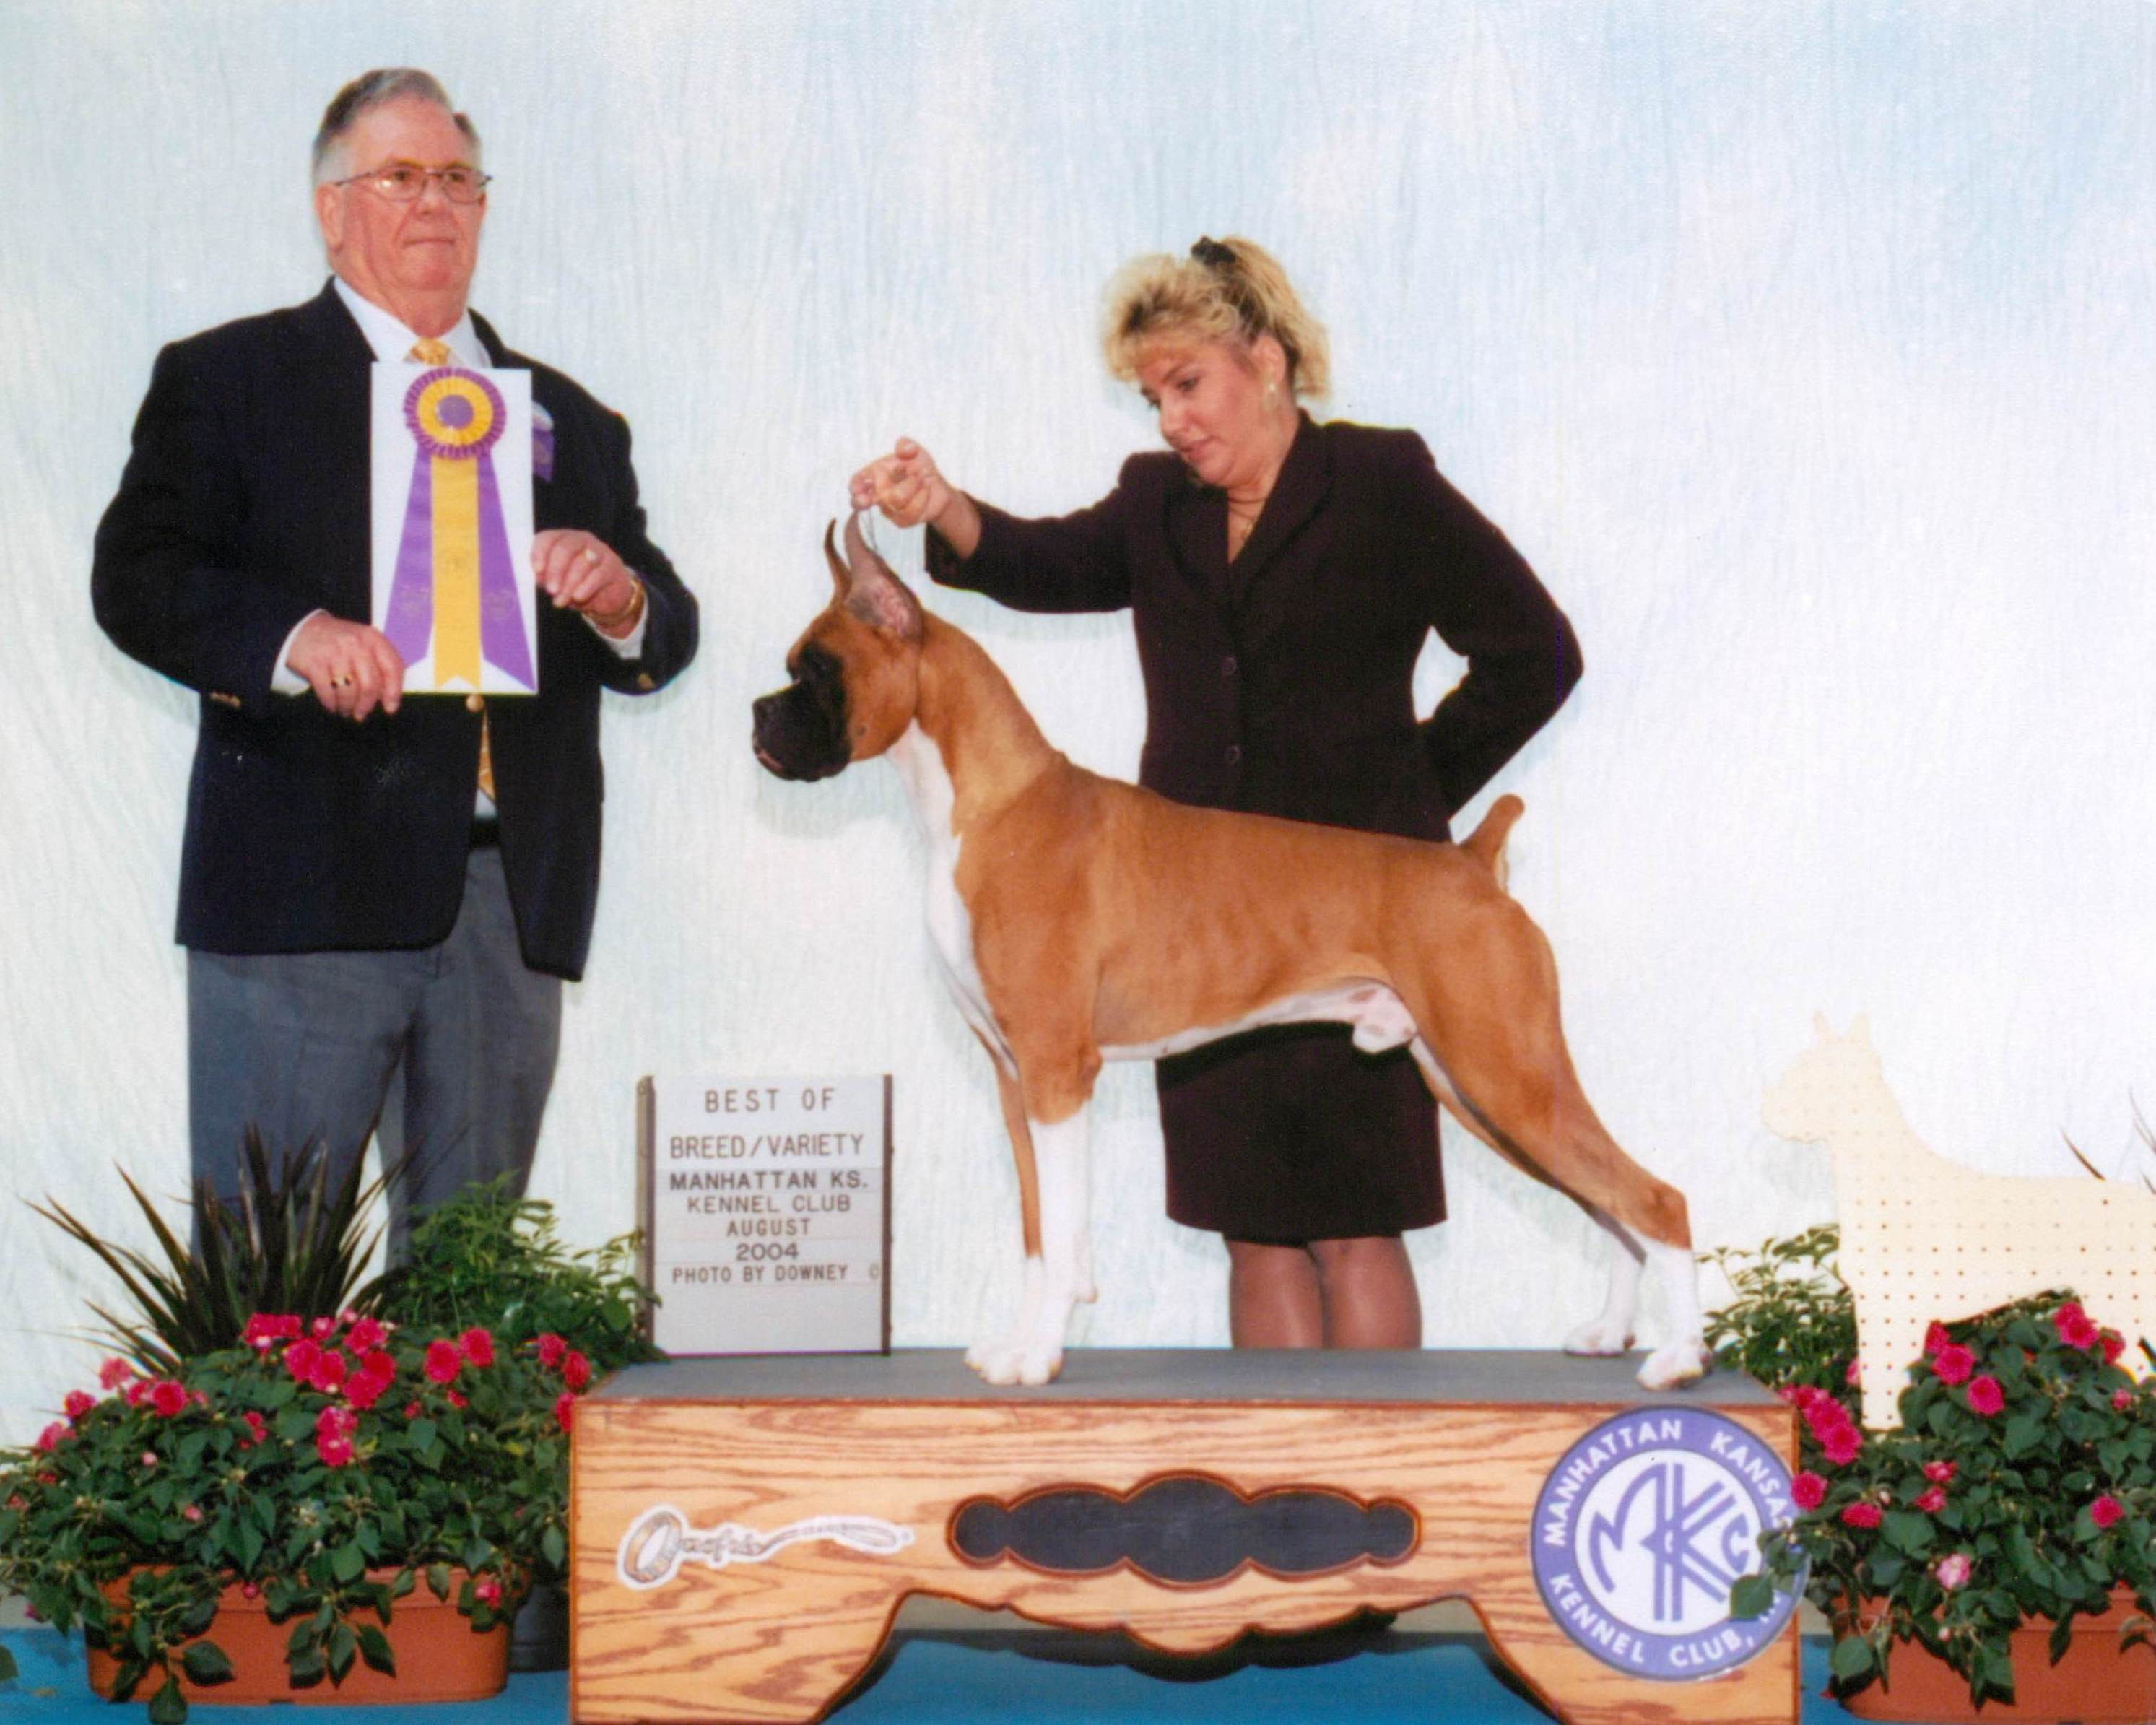 Best of Breed @ 2004 Specialty Show #2